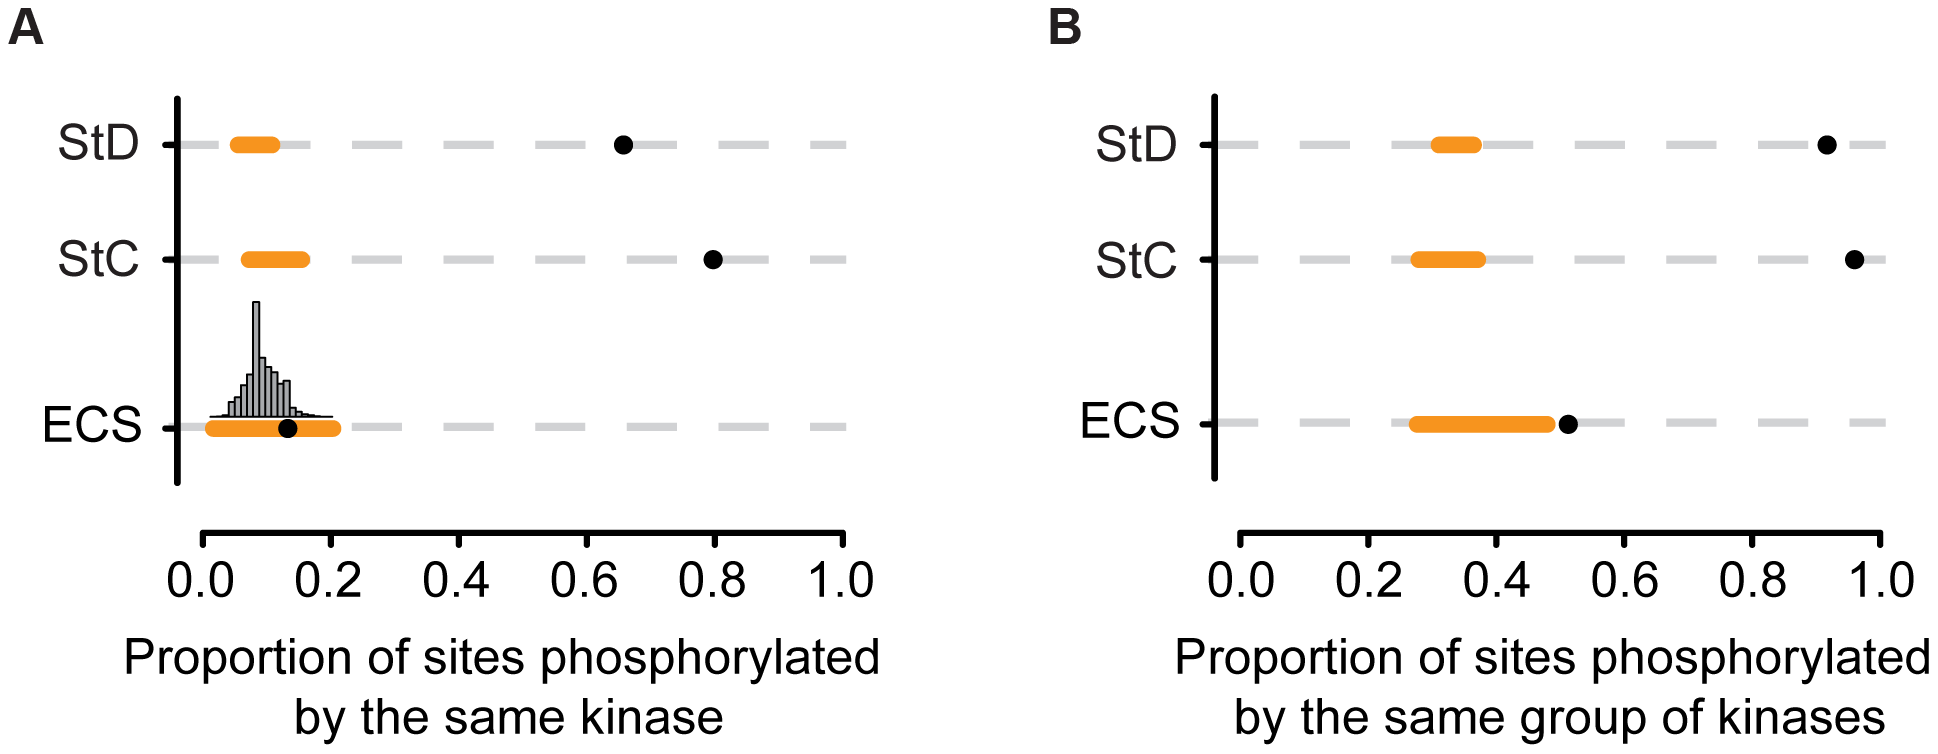 Proportion of sites that are phosphorylated by the same protein kinase.